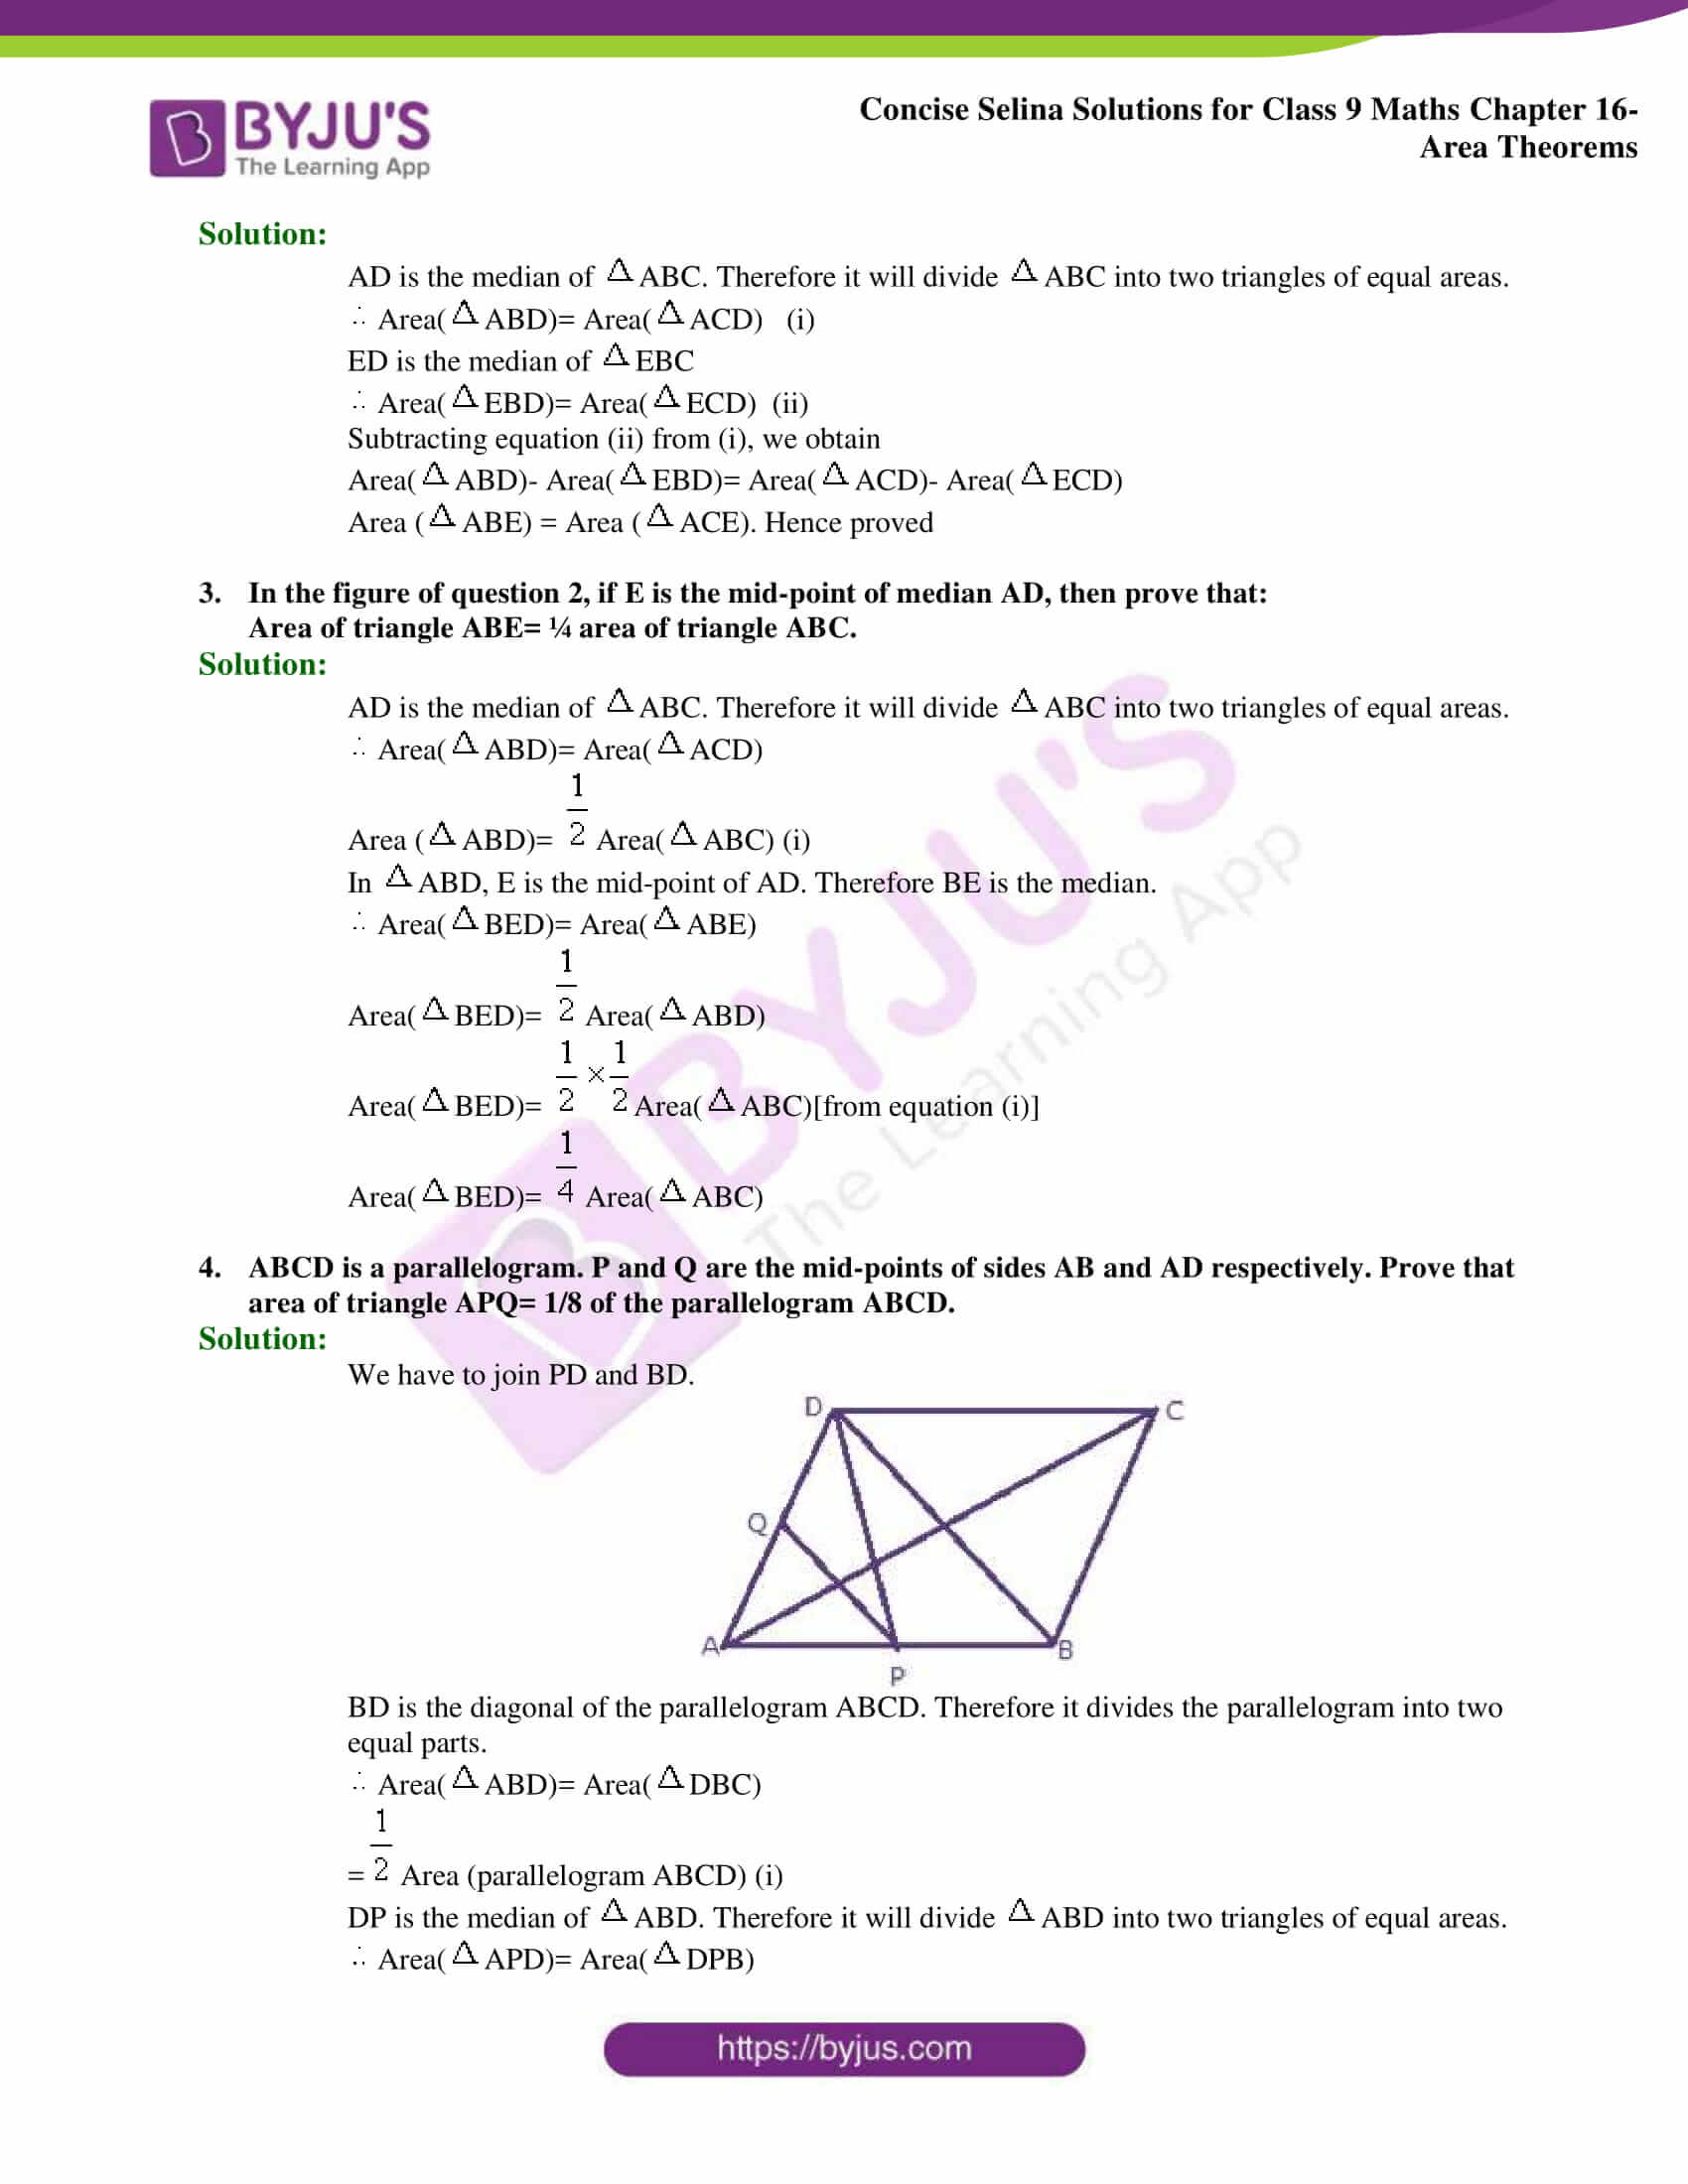 Concise Selina Solutions Class 9 Maths Chapter 16 Area Theorems part 18